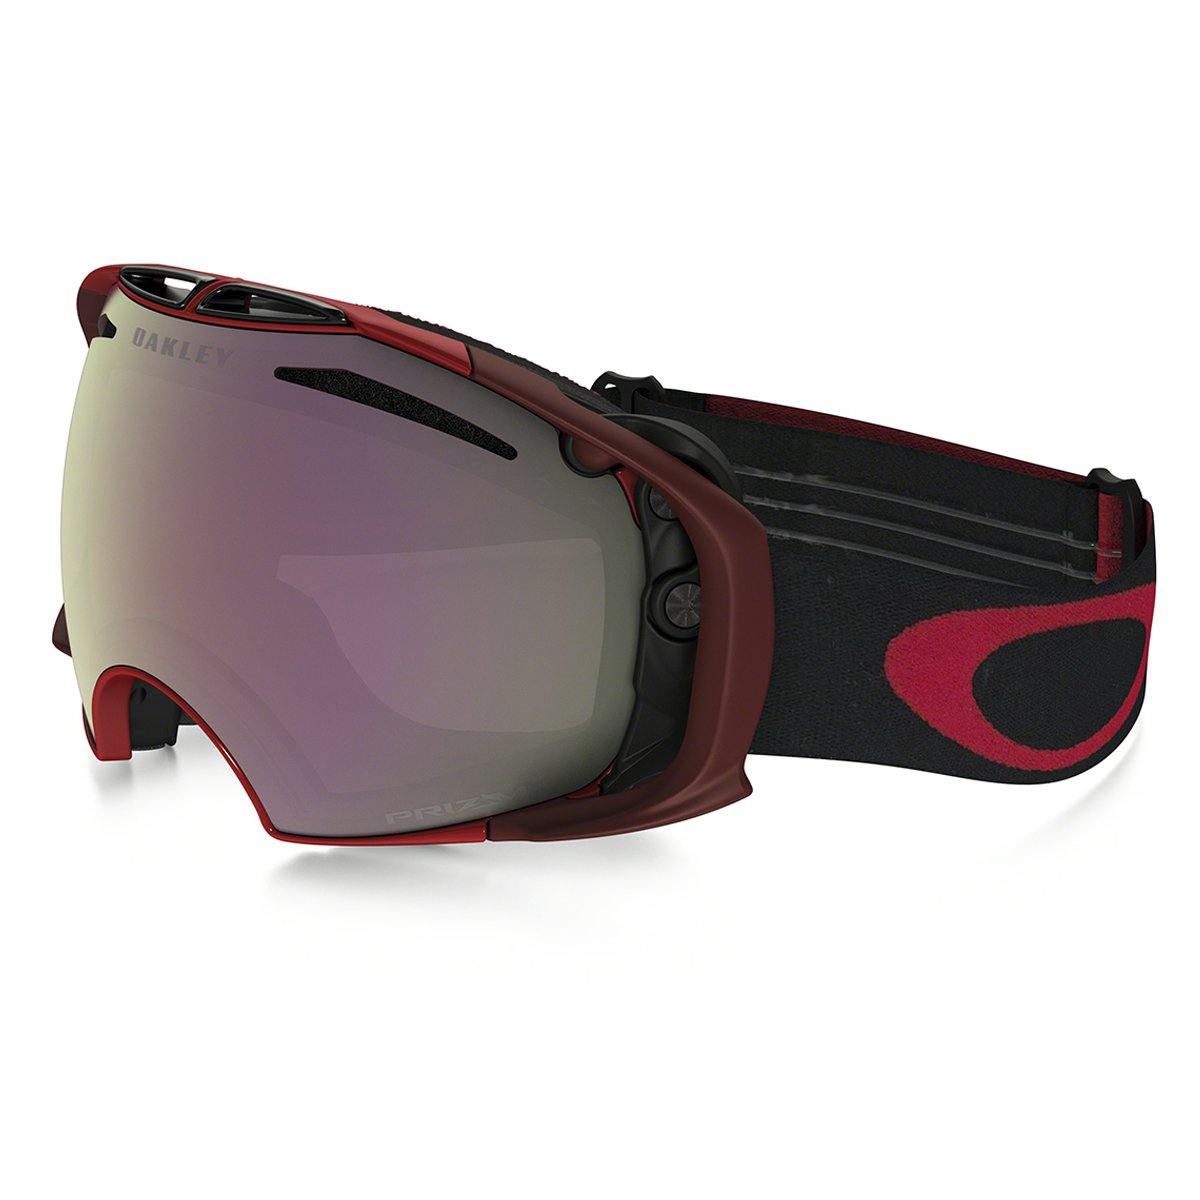 578eeff140d Oakley Goggles Snow Crowbar Replacement Lenses « One More Soul